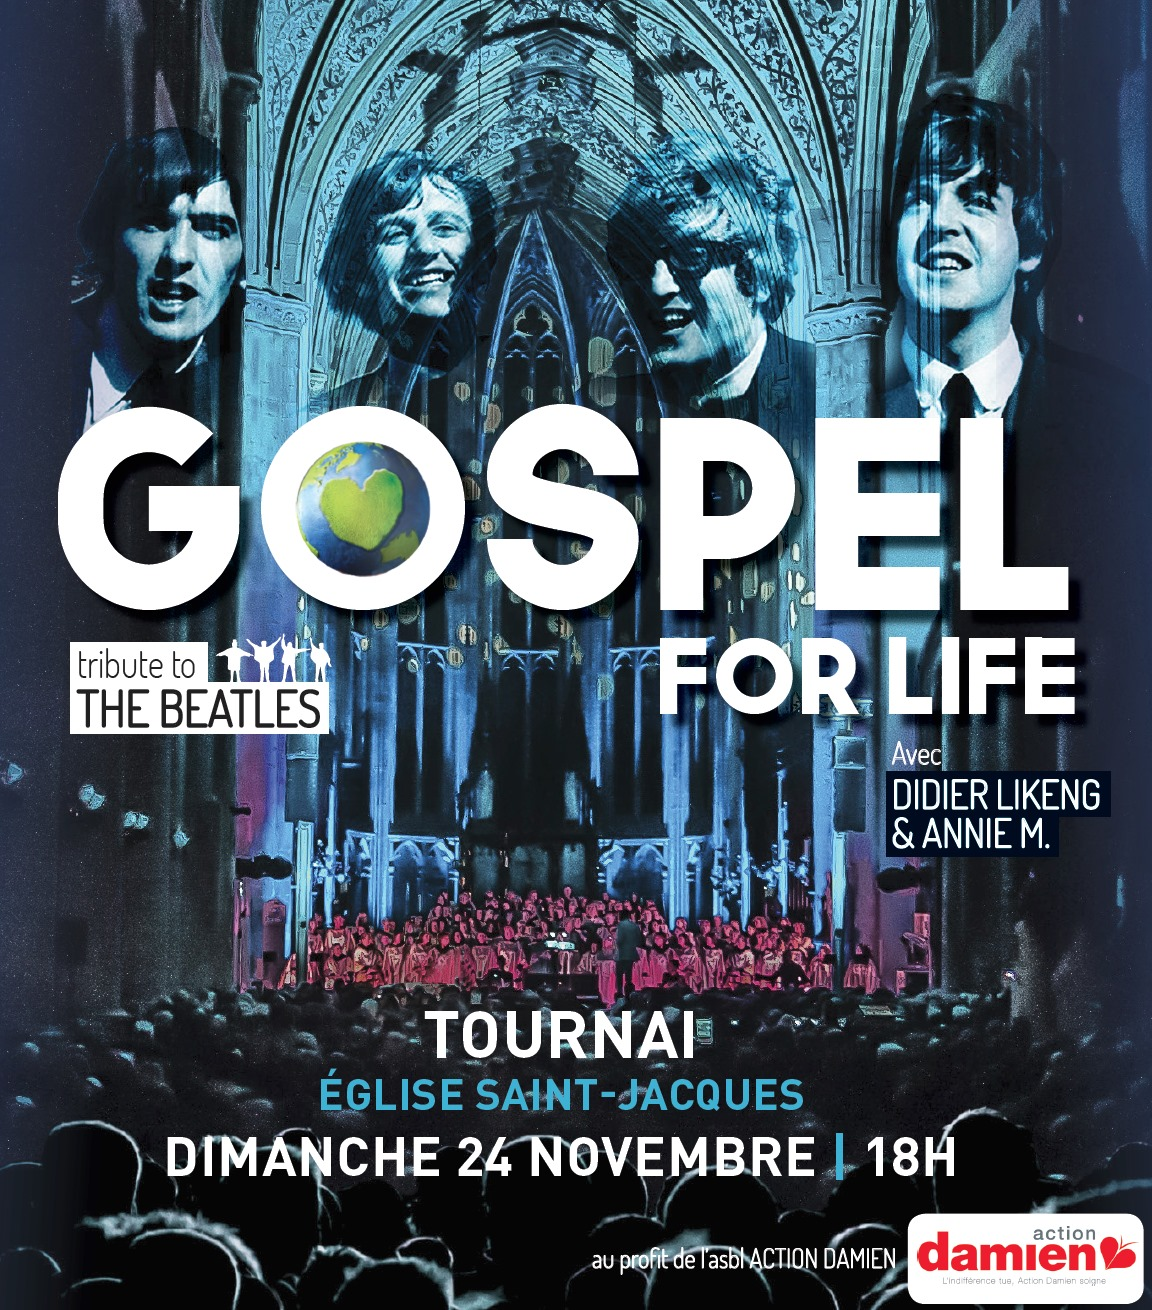 Gospel for life tournai 2019